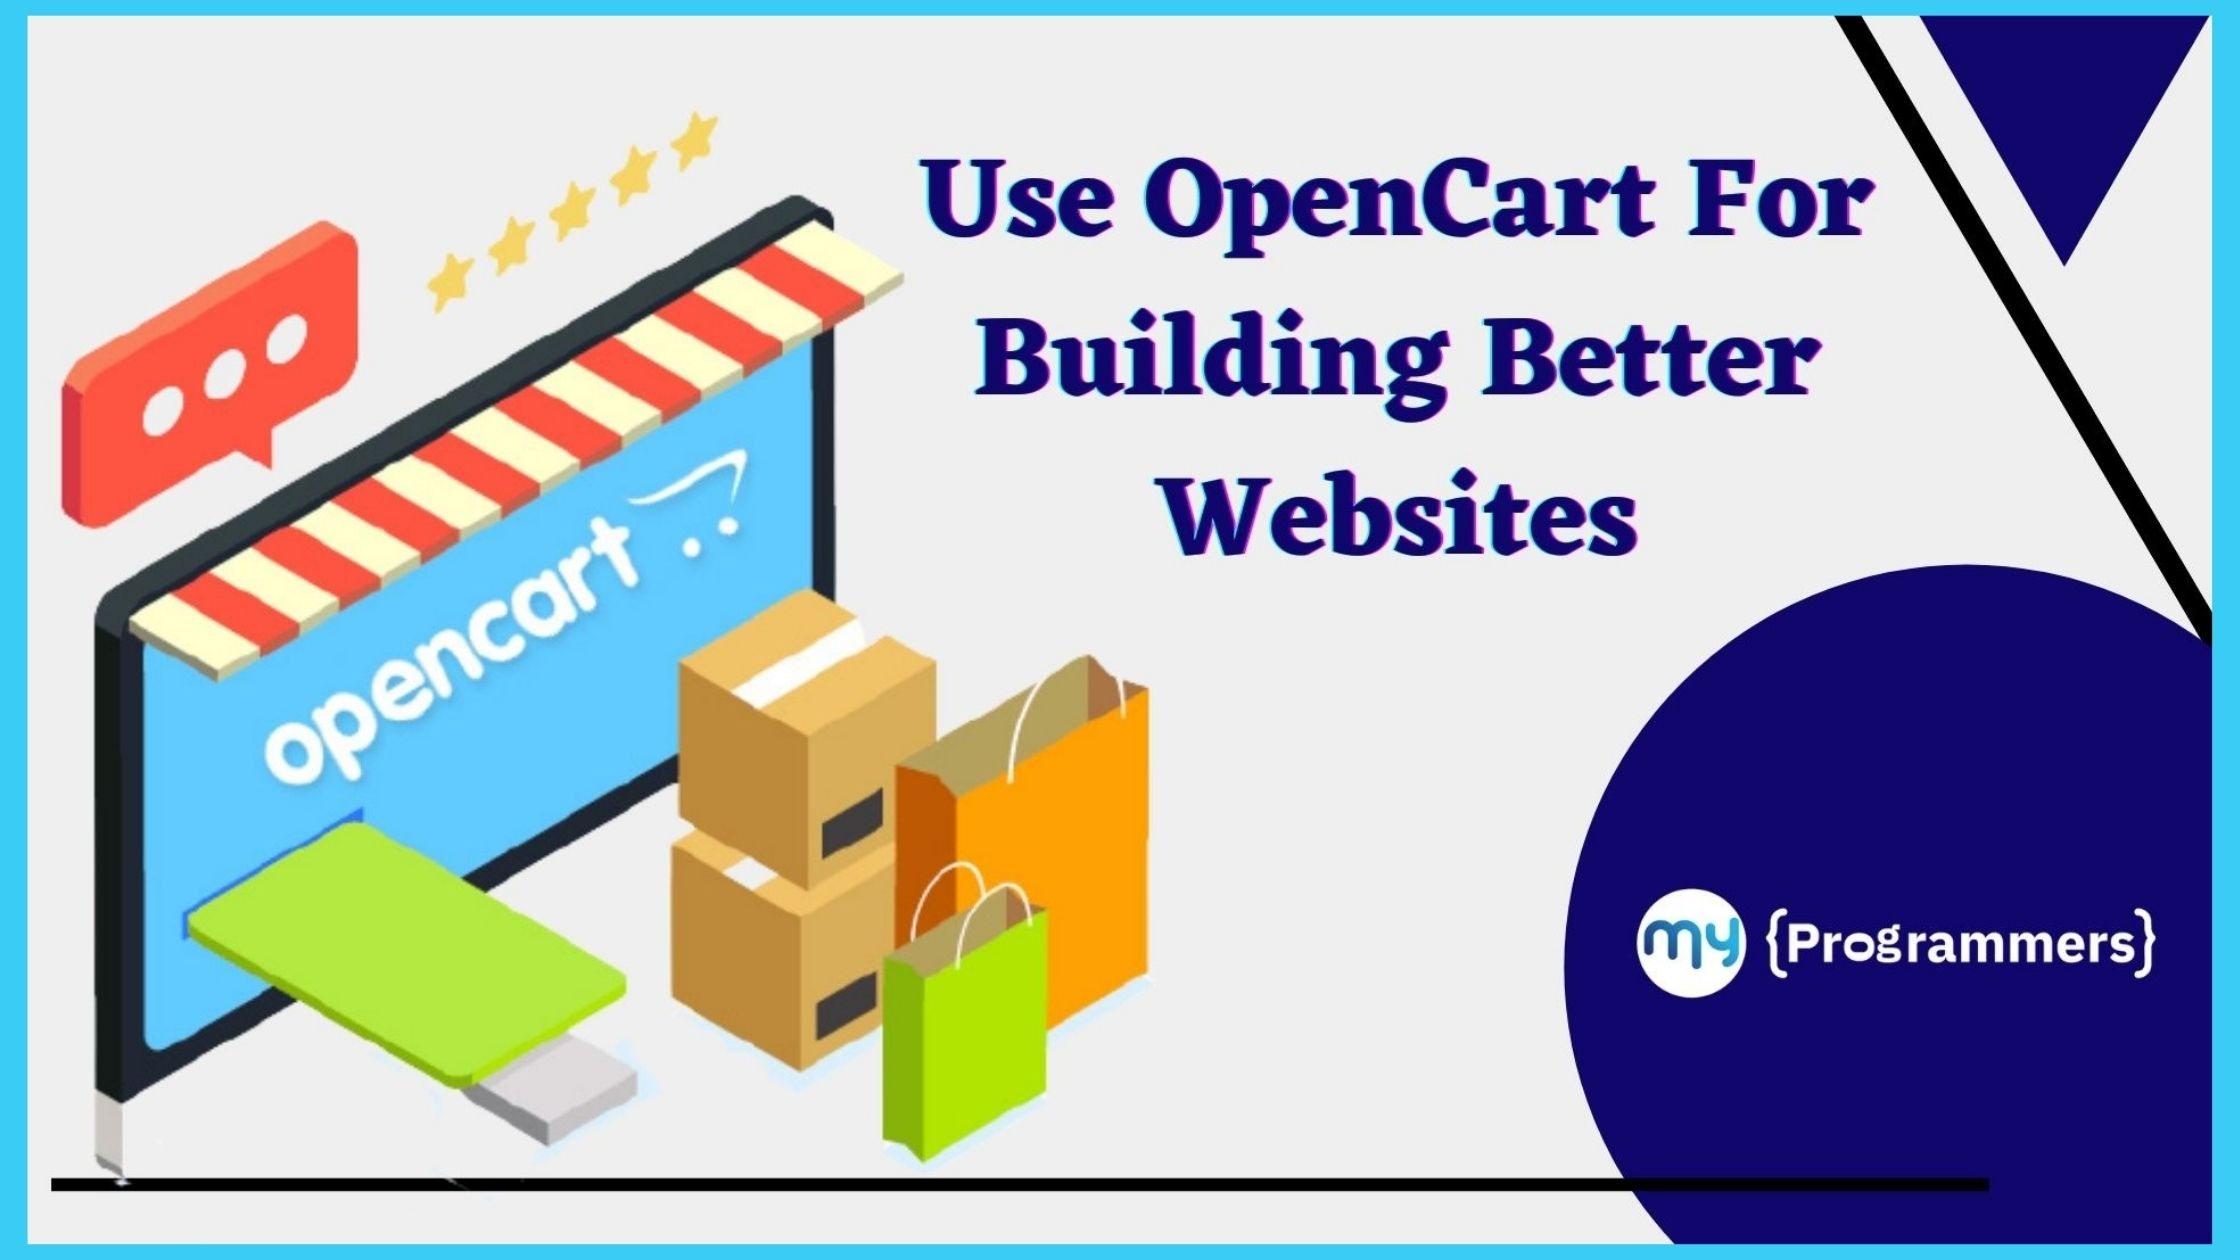 Use-OpenCart-For-Building-Better-Websites